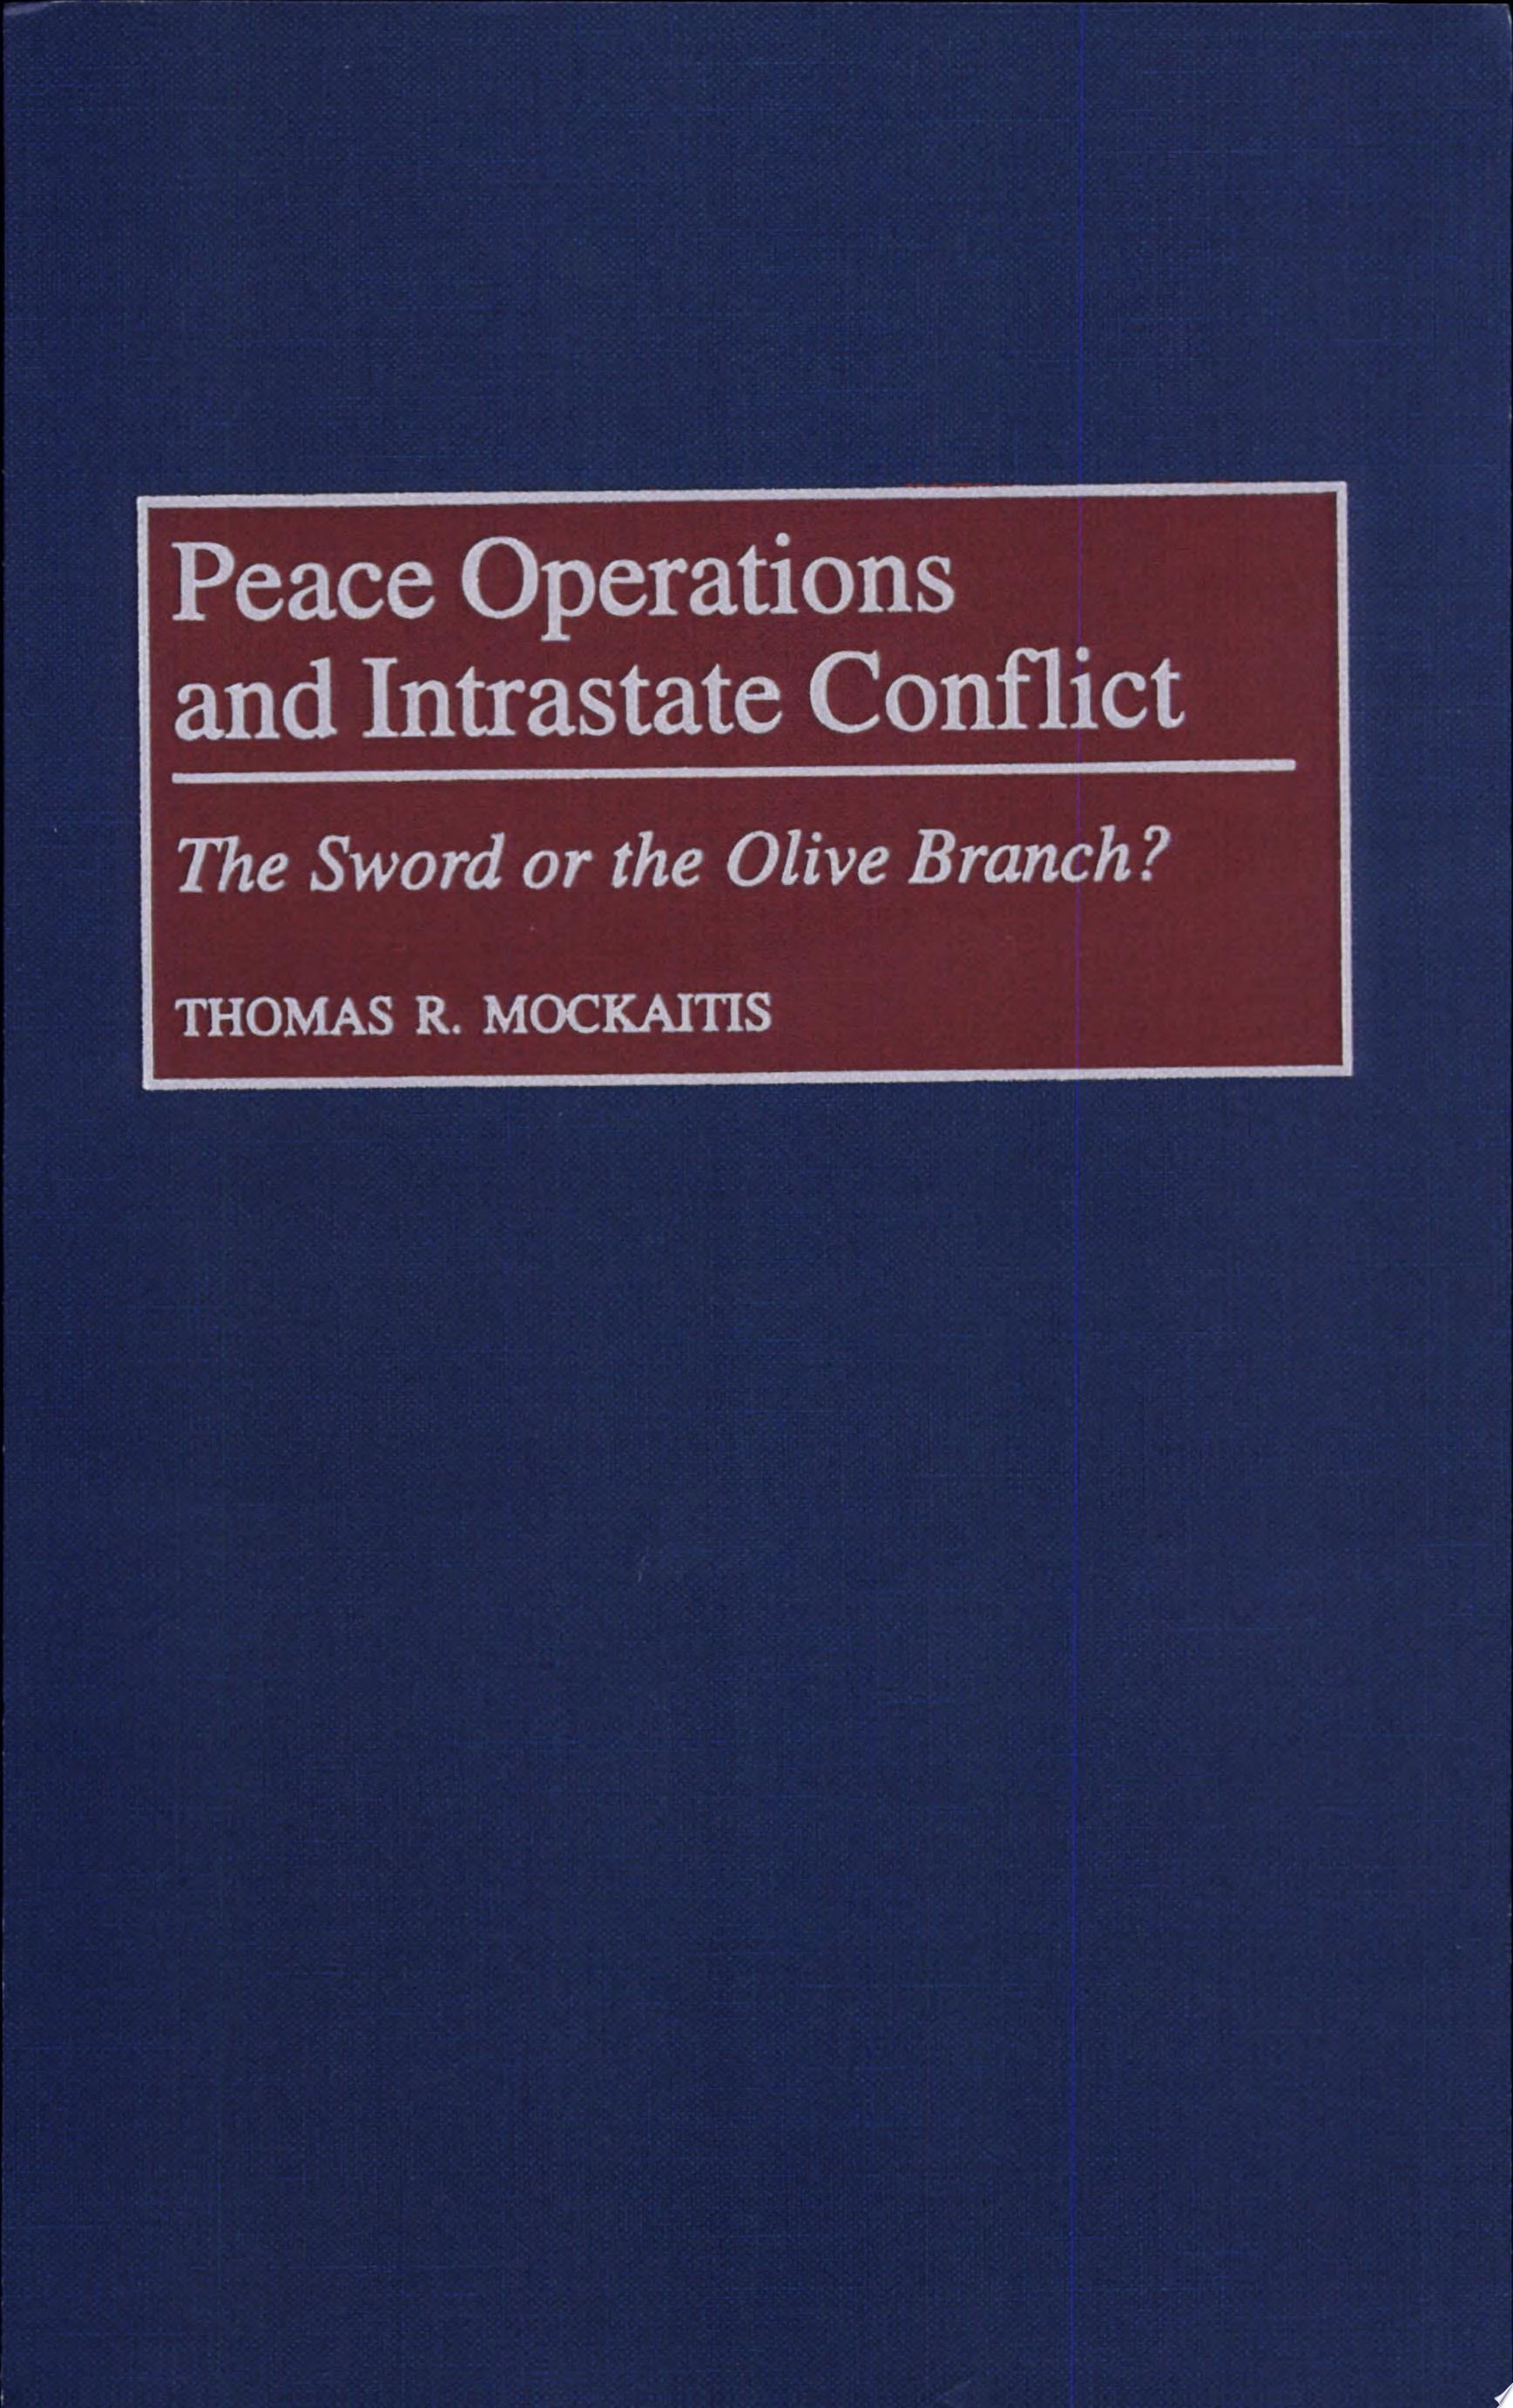 Peace Operations and Intrastate Conflict